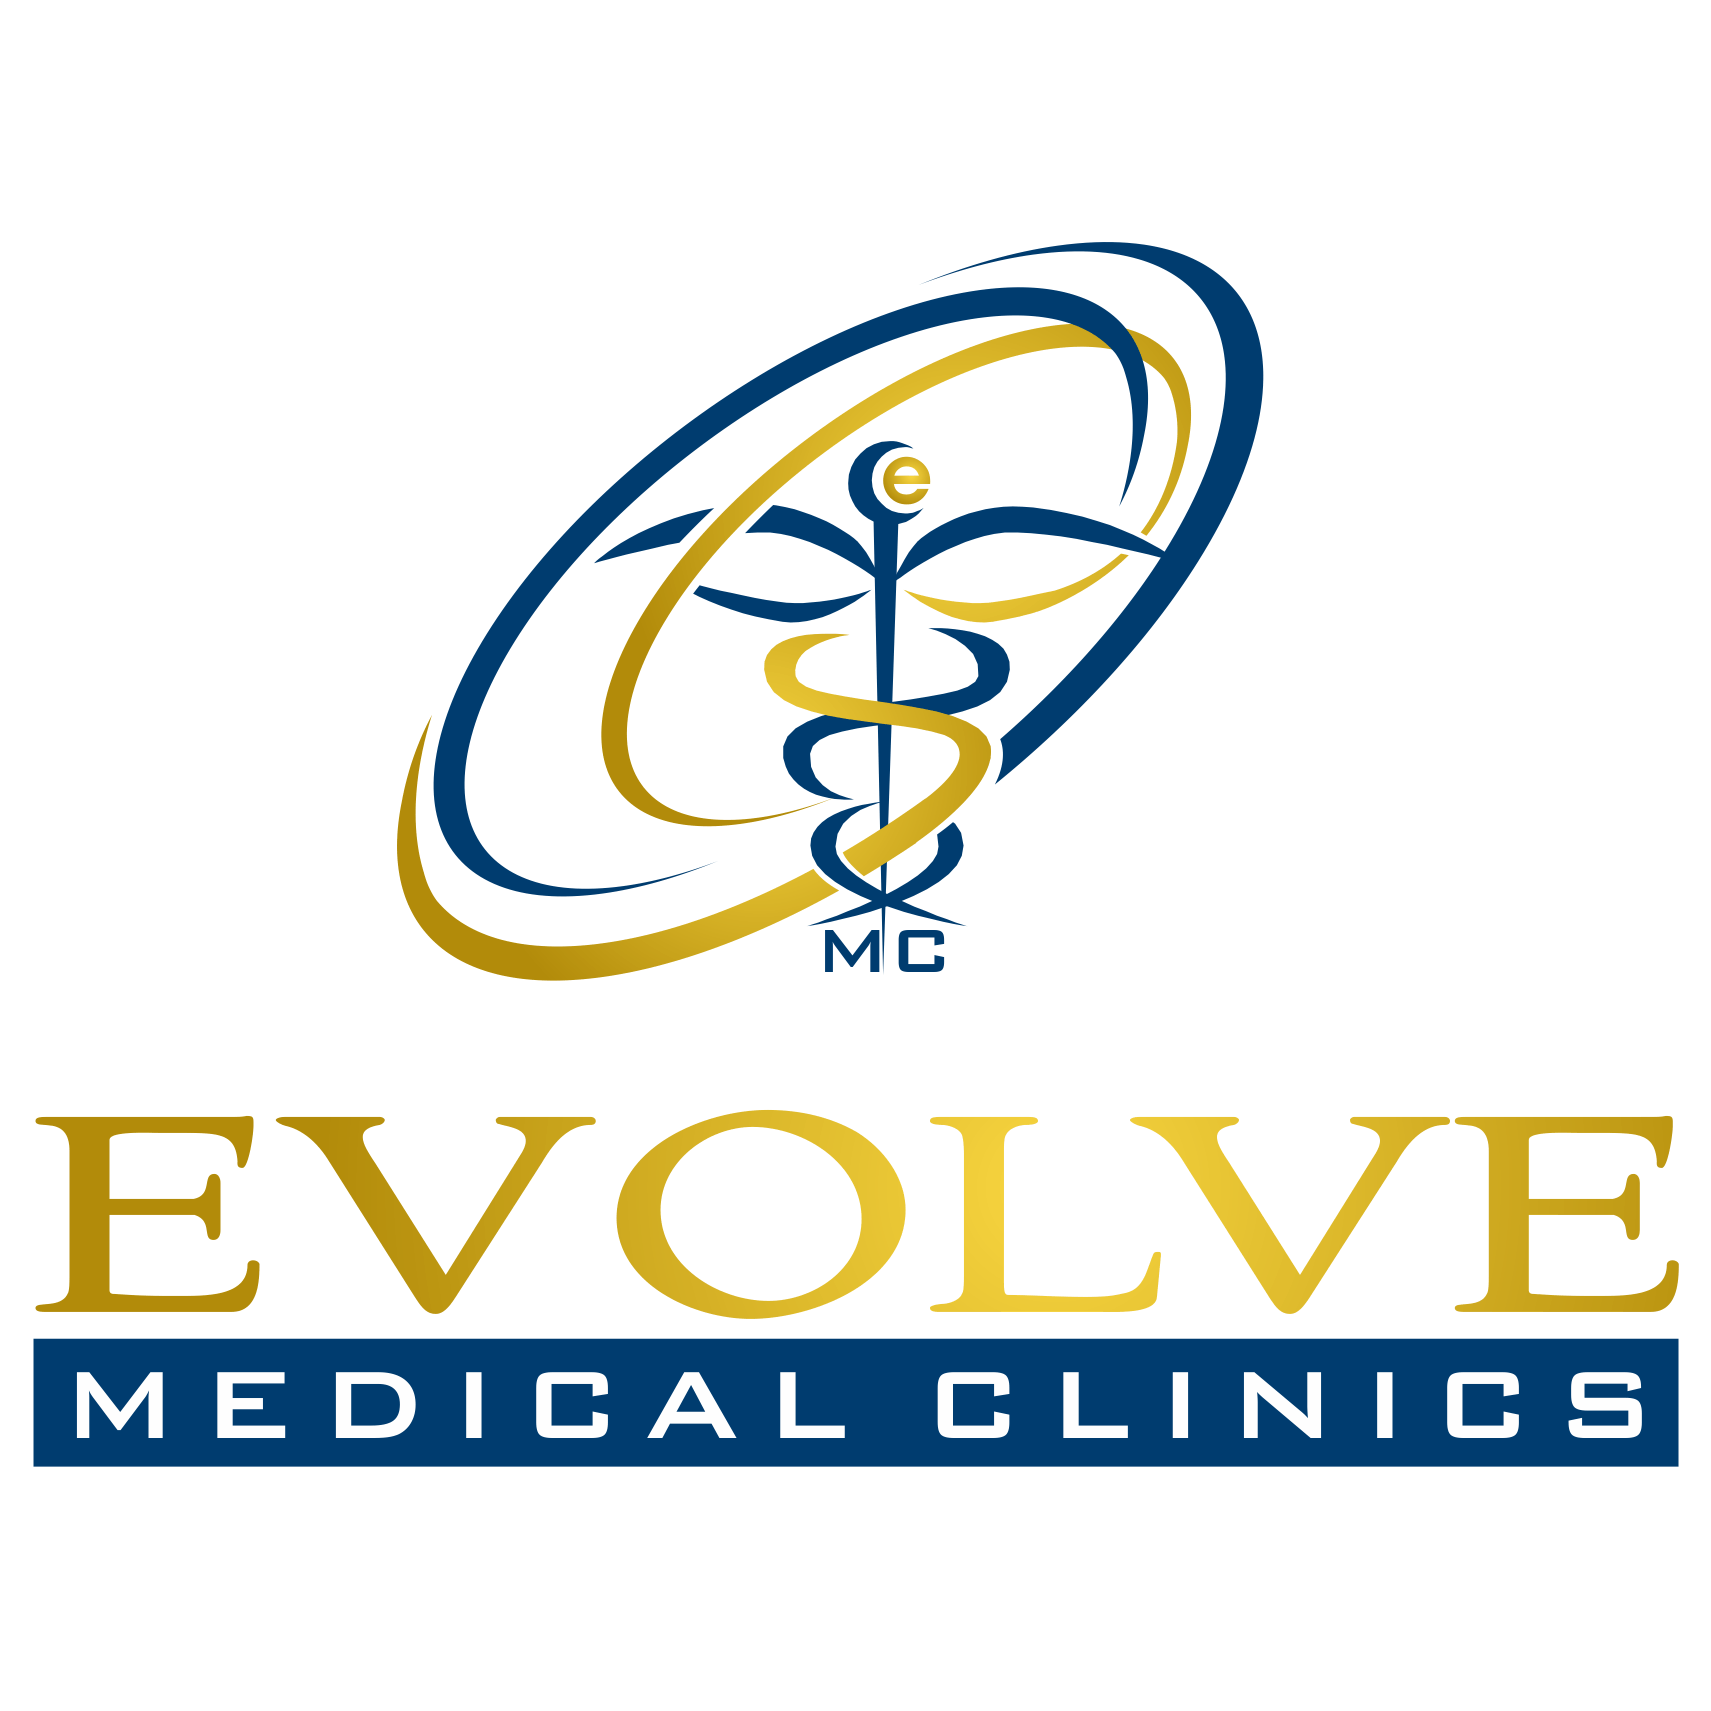 Evolve Medical Clinics